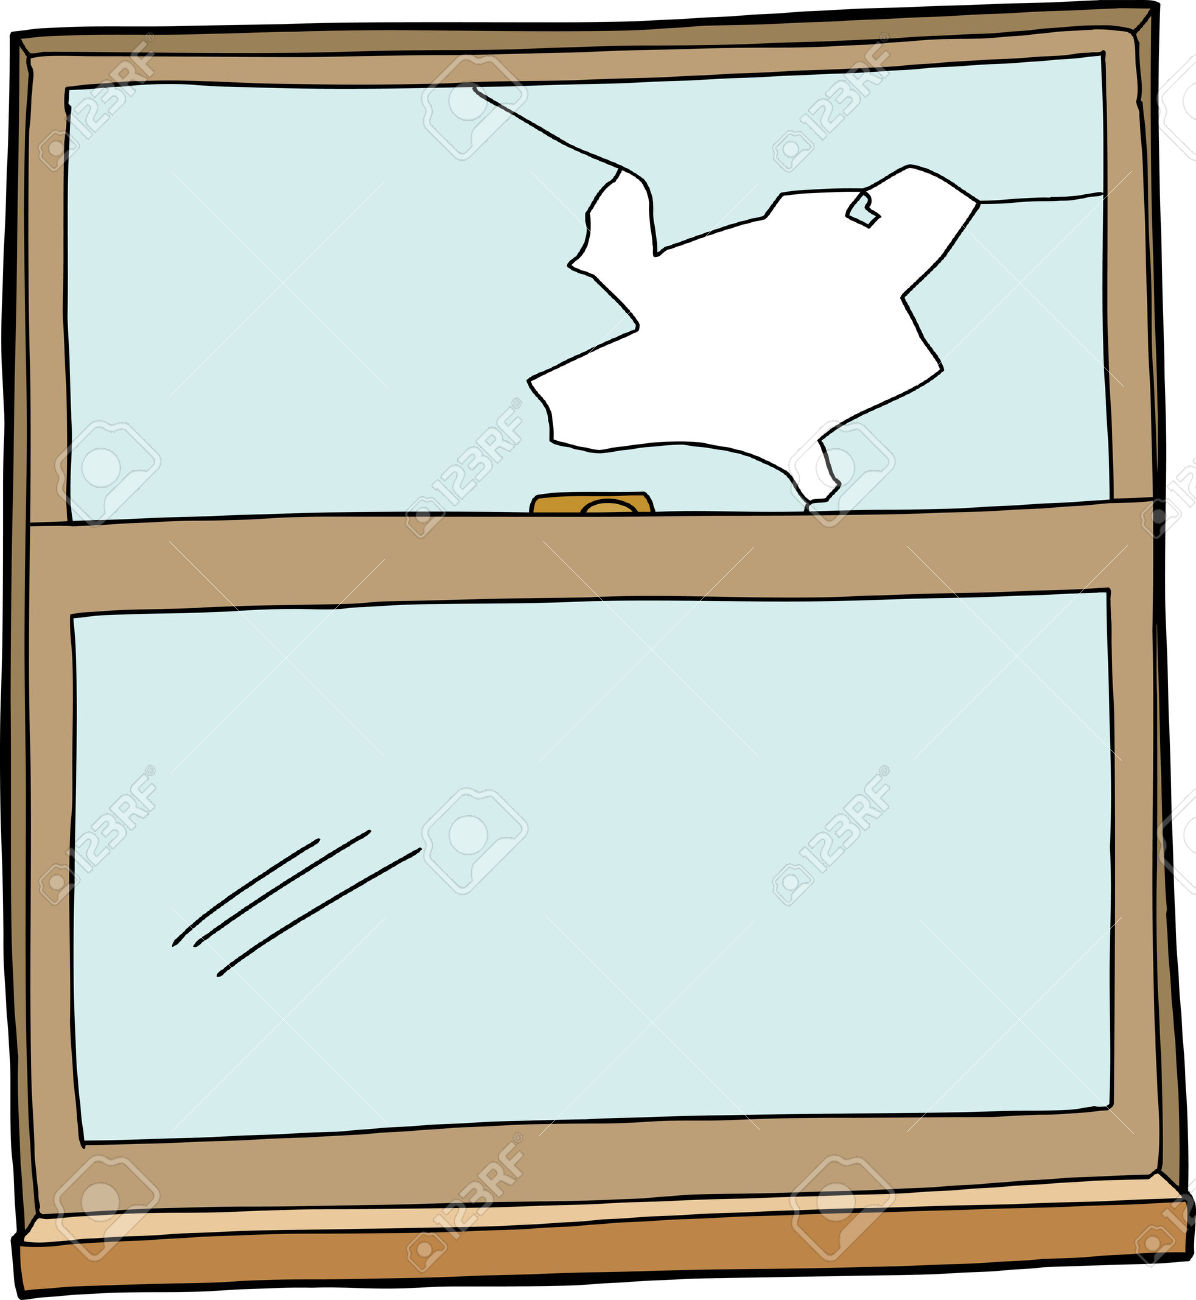 Glass panes clipart #10